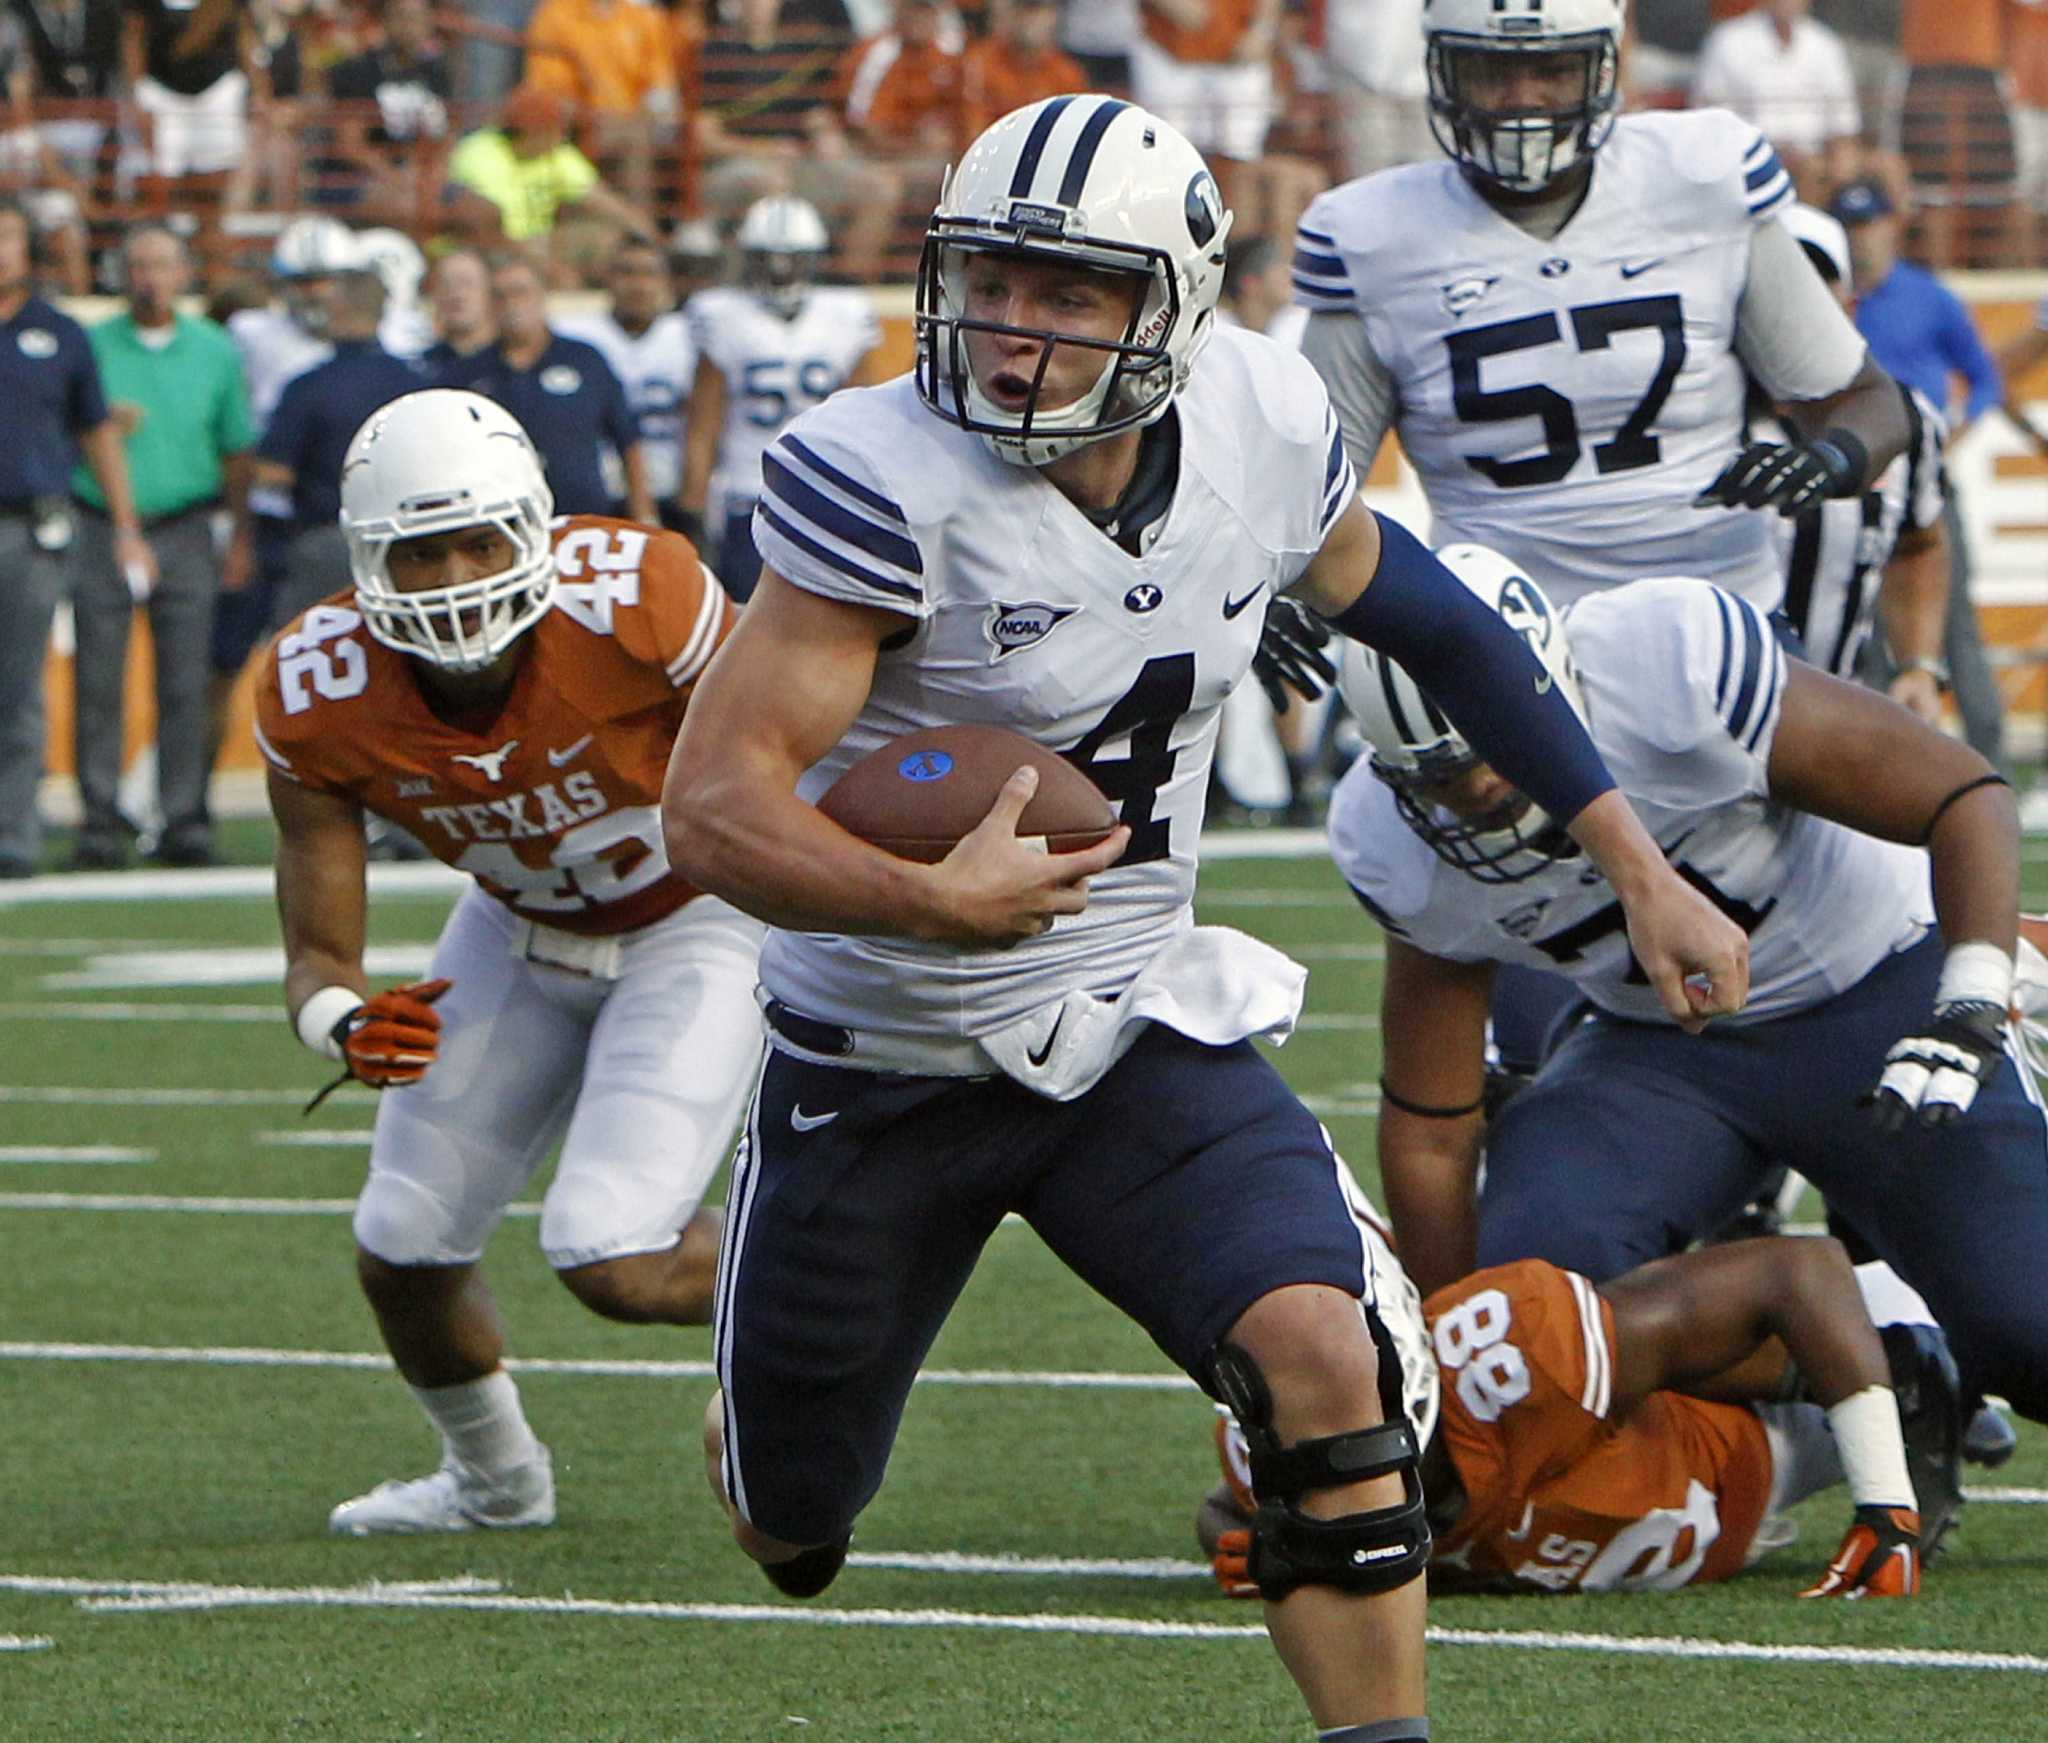 College Football Notebook: No. 25 BYU To Host Houston